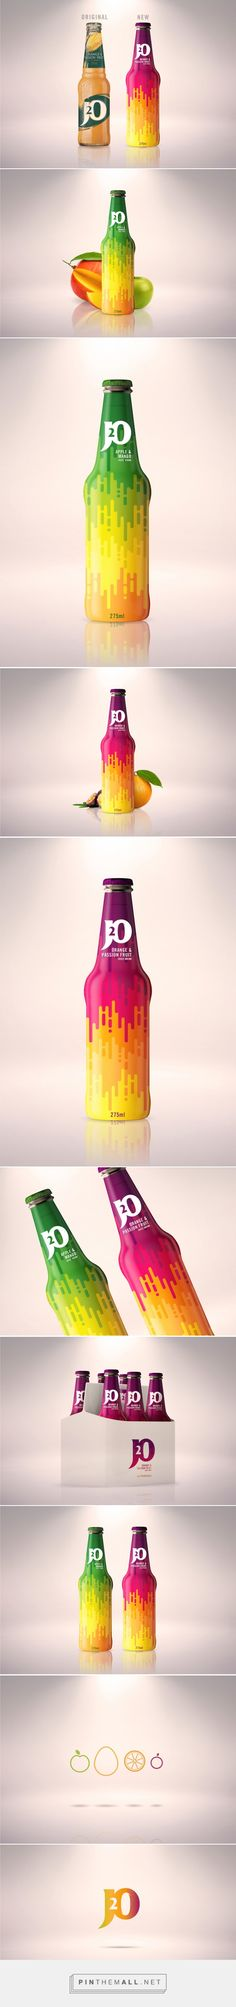 The J20 Project (Concept) on Packaging of the World - Creative Package Design Gallery - http://www.packagingoftheworld.com/2015/05/the-j20-project-concept.html